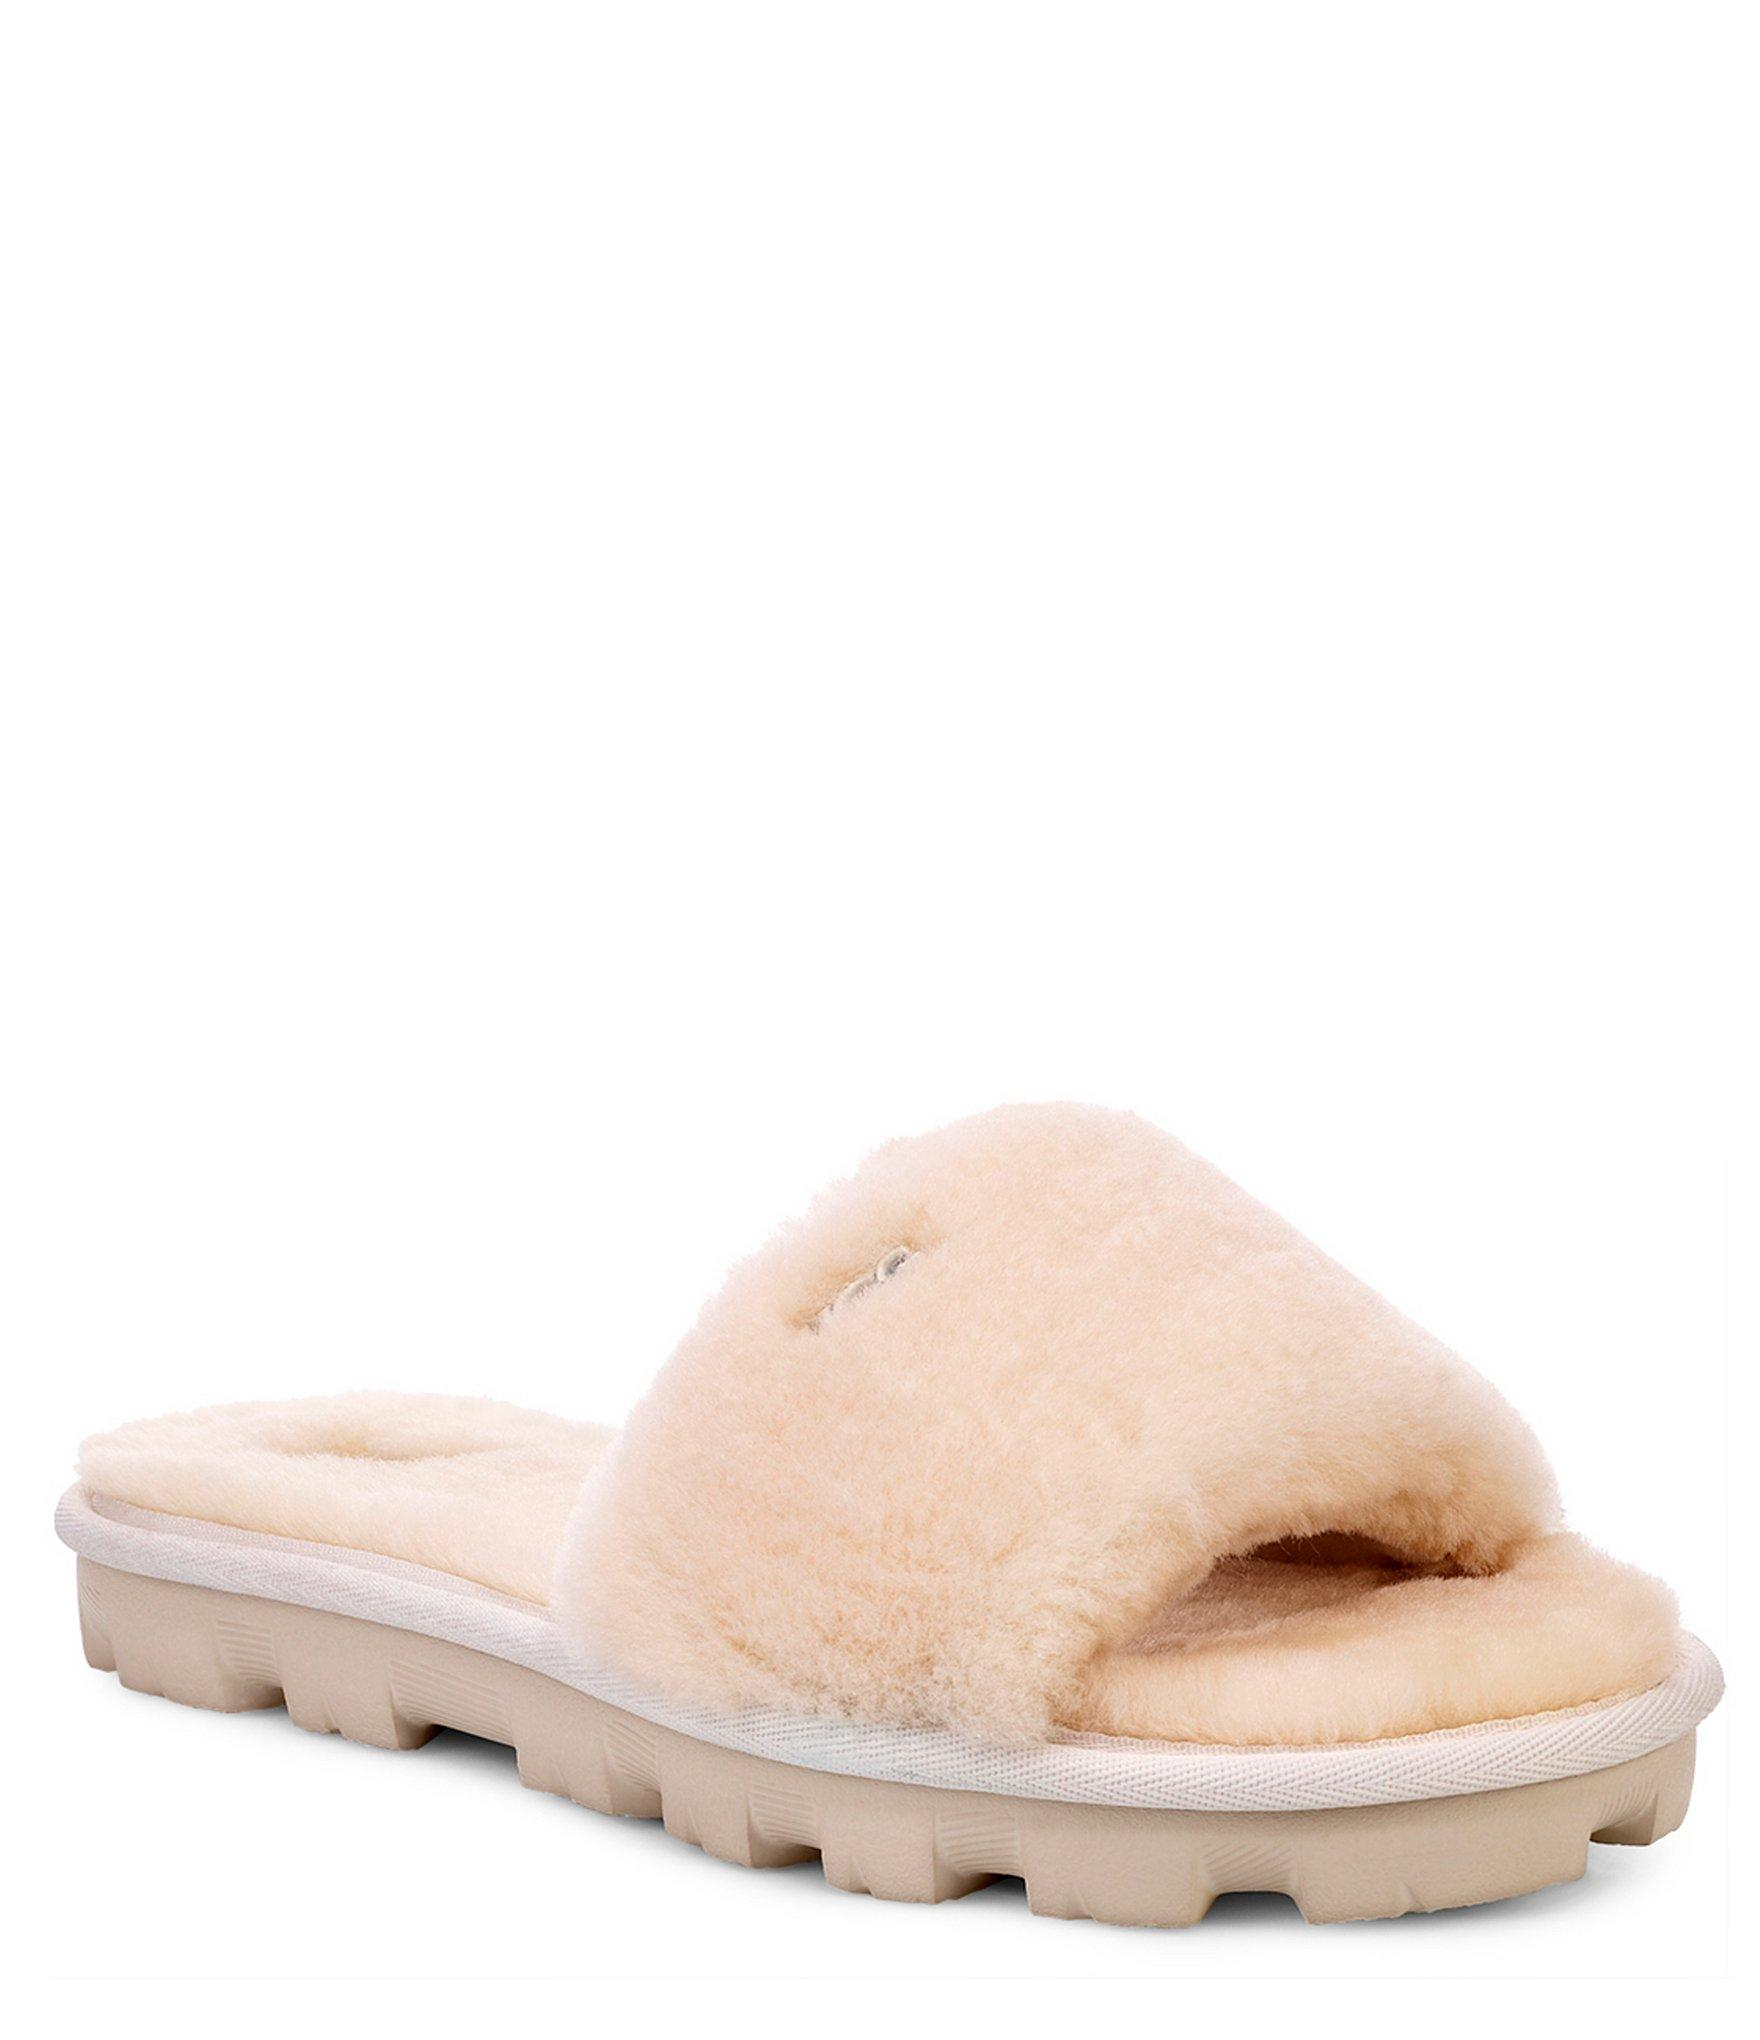 897e138ed662 Lyst - UGG Cozette Slippers in Natural